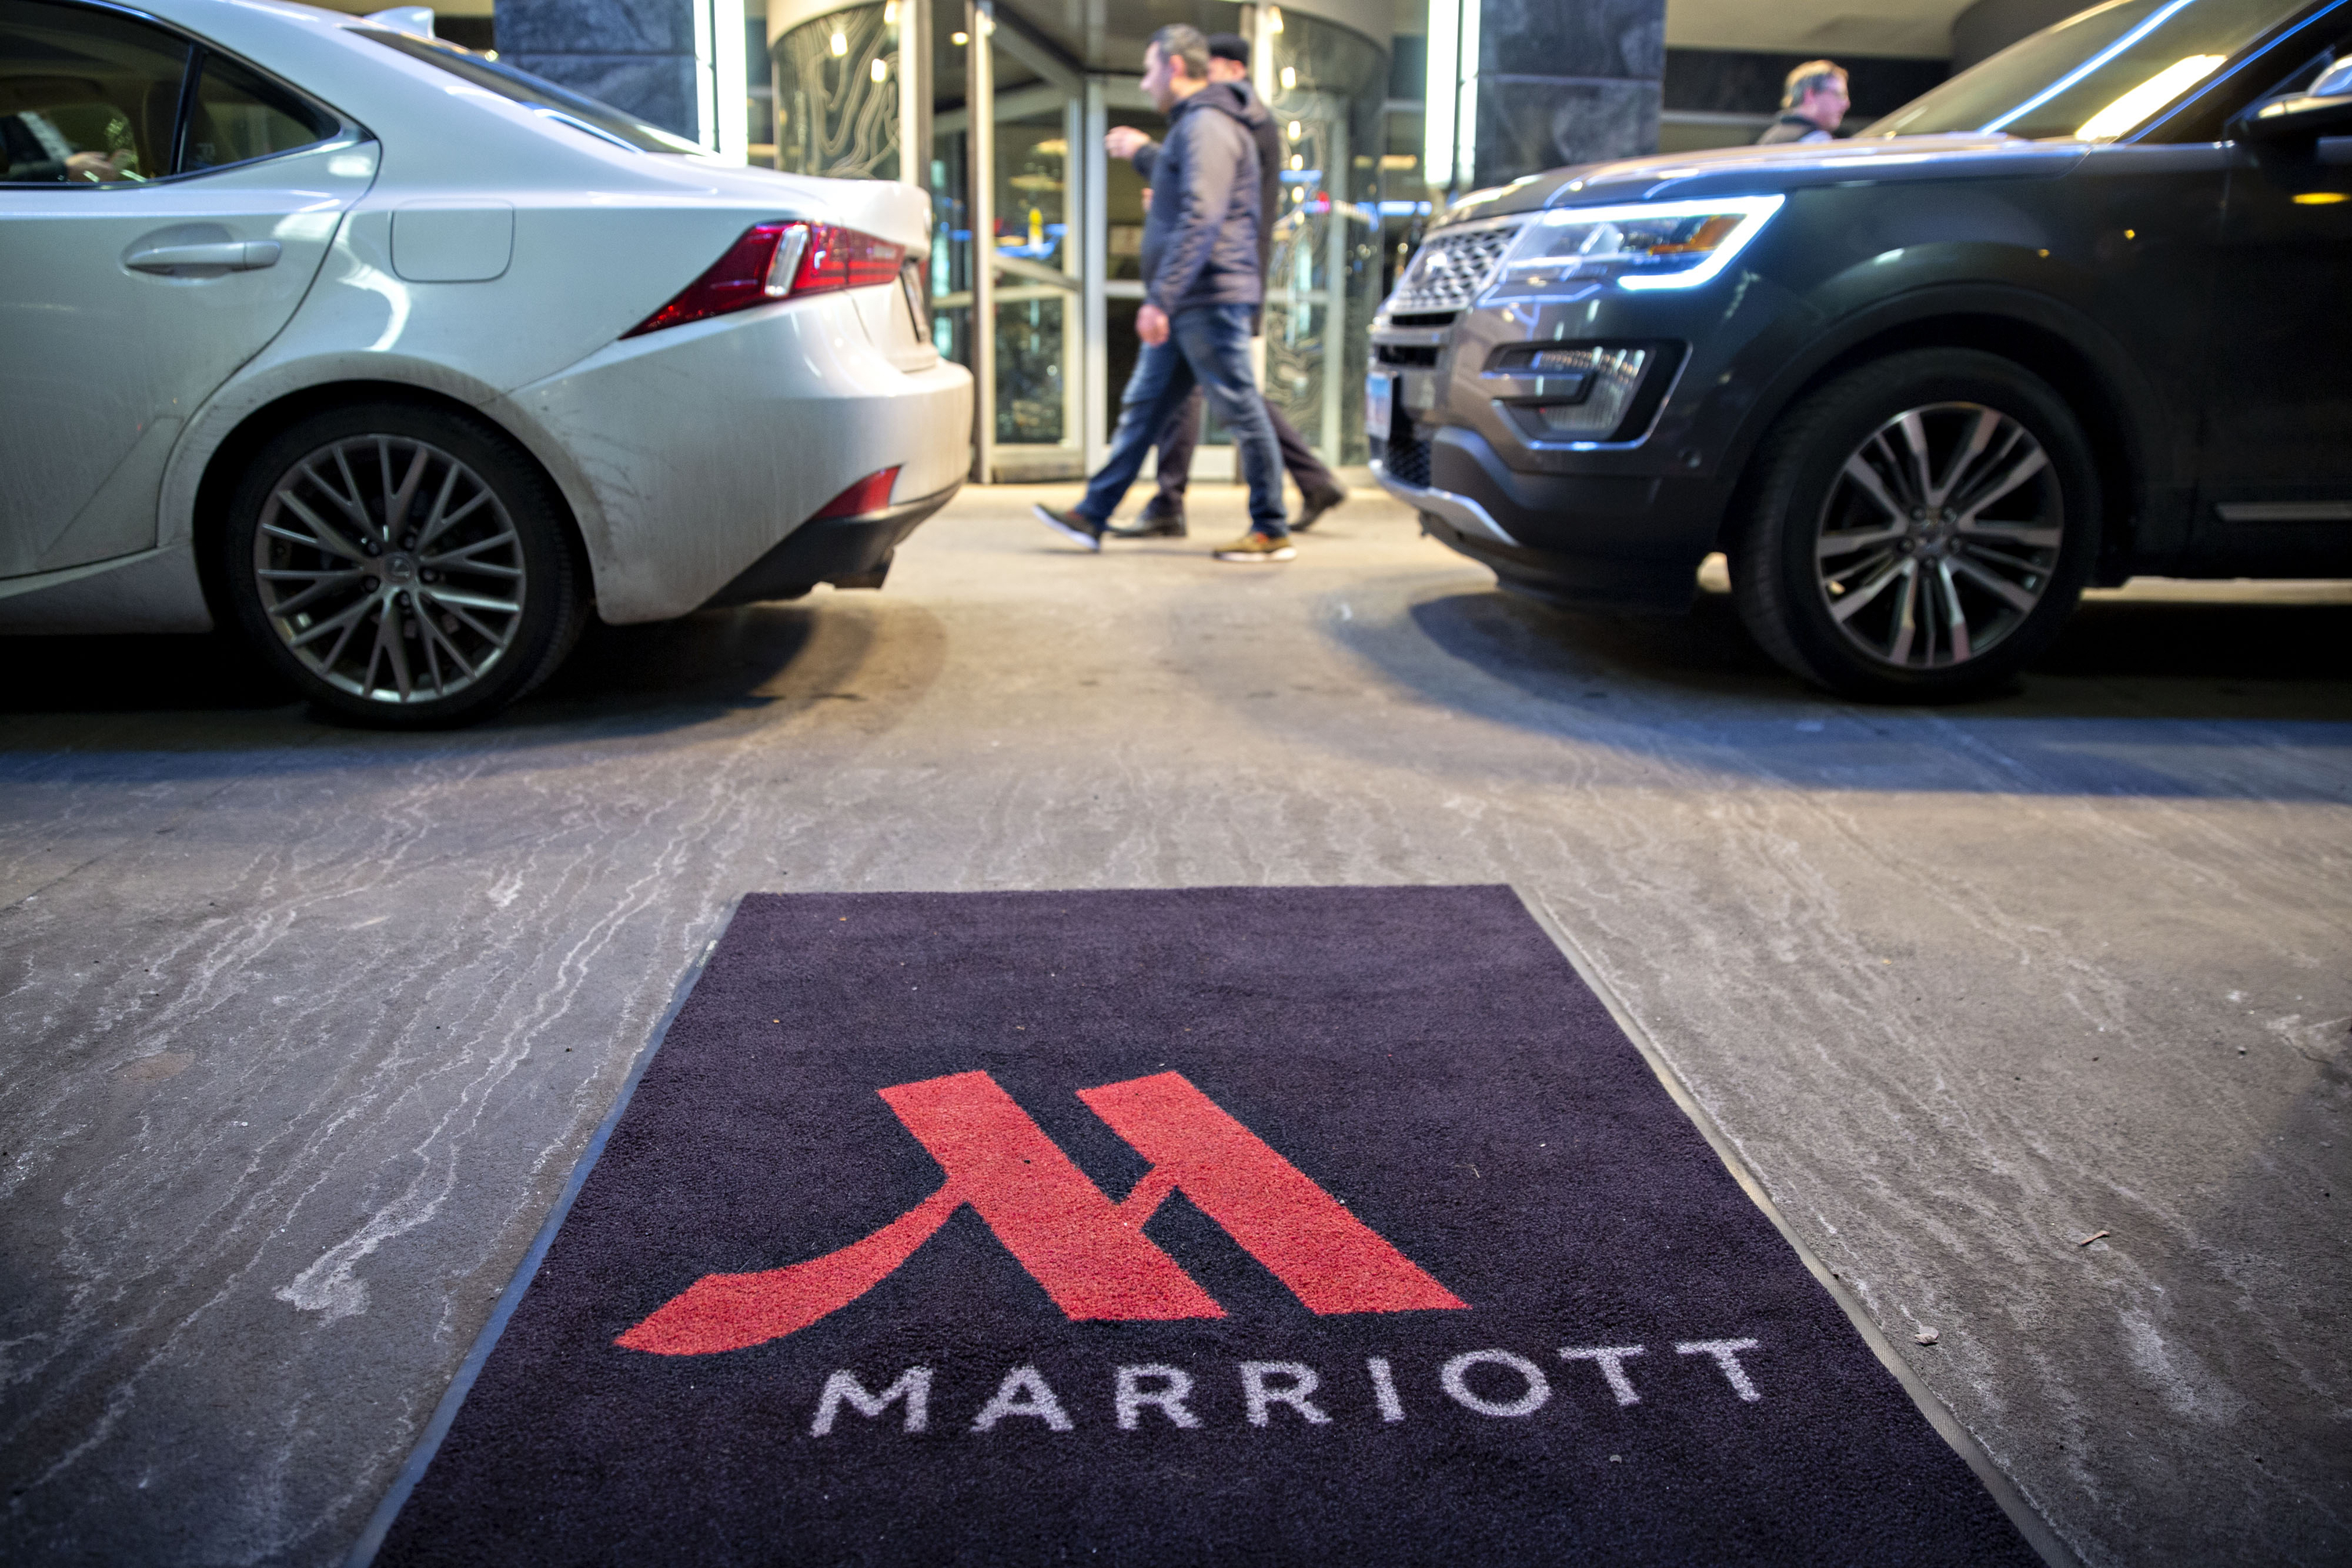 Marriott expands home-sharing to U.S. as hotels react to Airbnb